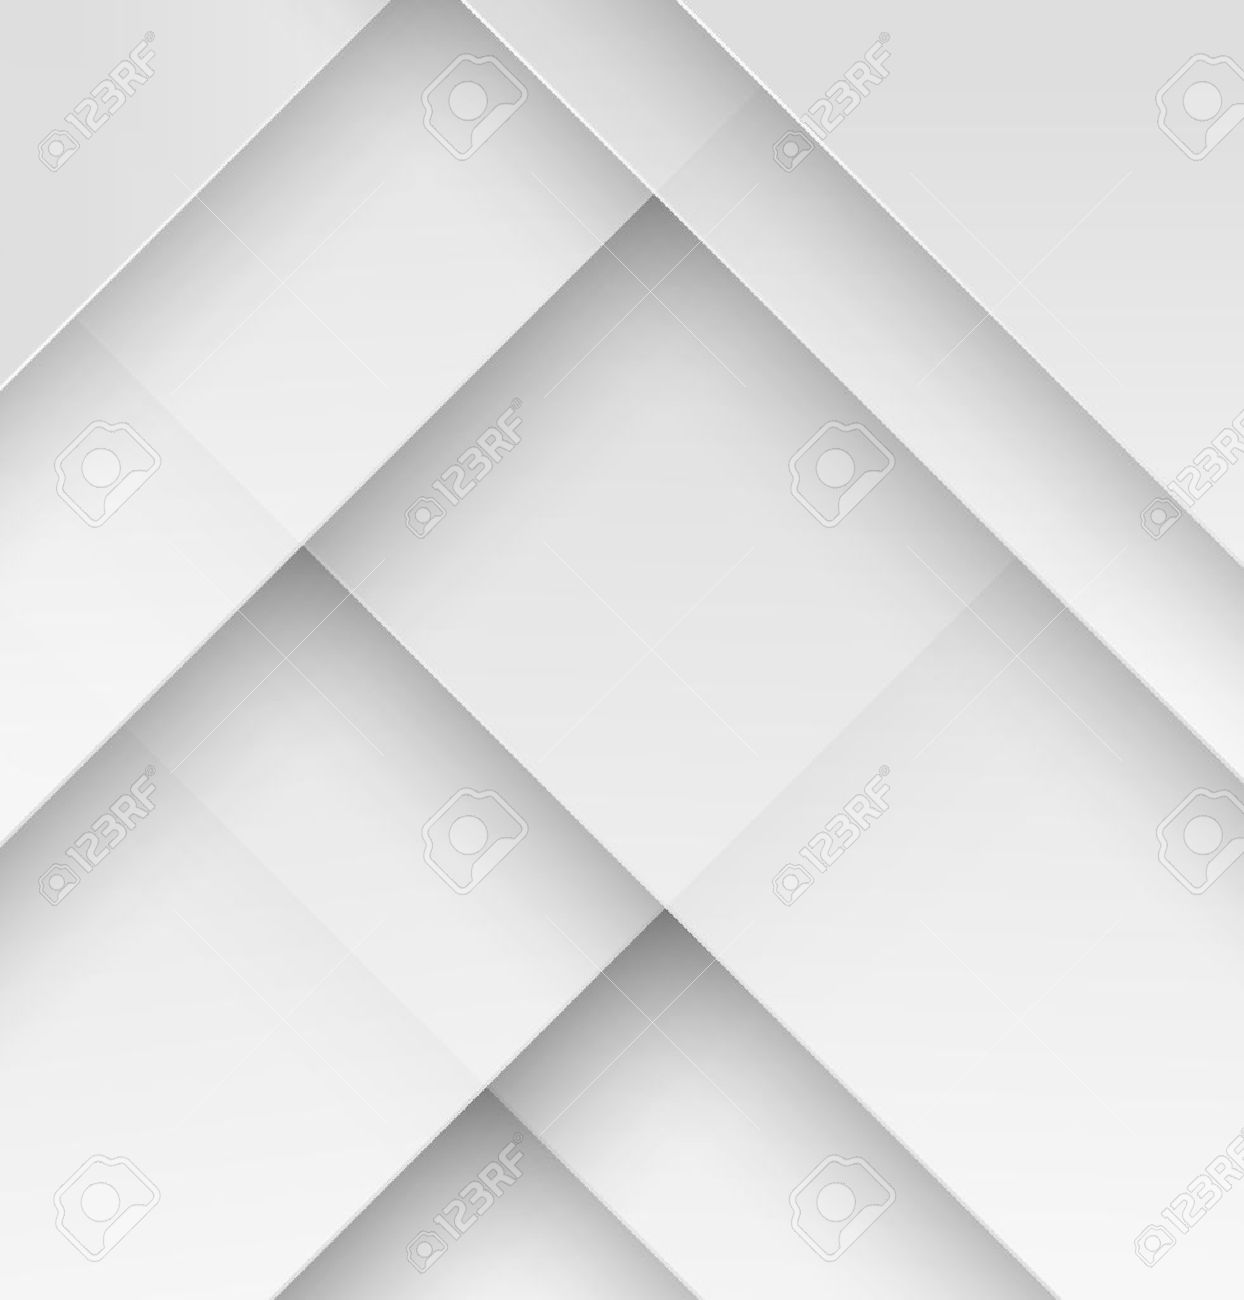 White paper material design wallpaper with shadow. Vector illustration Stock Vector - 42063737